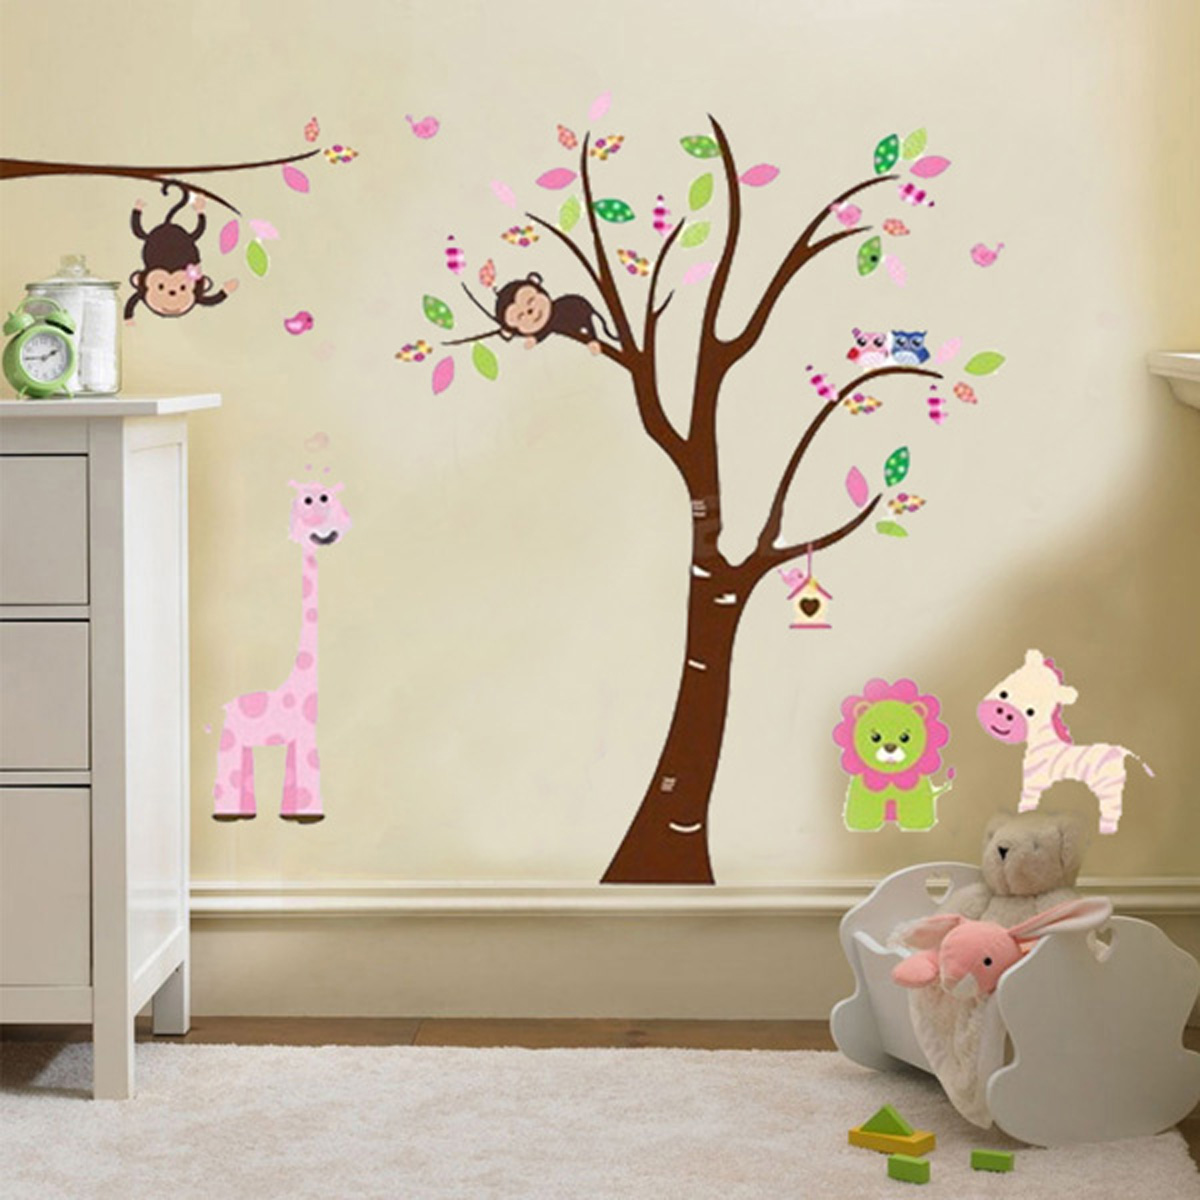 dessin animal arbre sticker mural autocollant amovible maison mur chambre d cor ebay. Black Bedroom Furniture Sets. Home Design Ideas